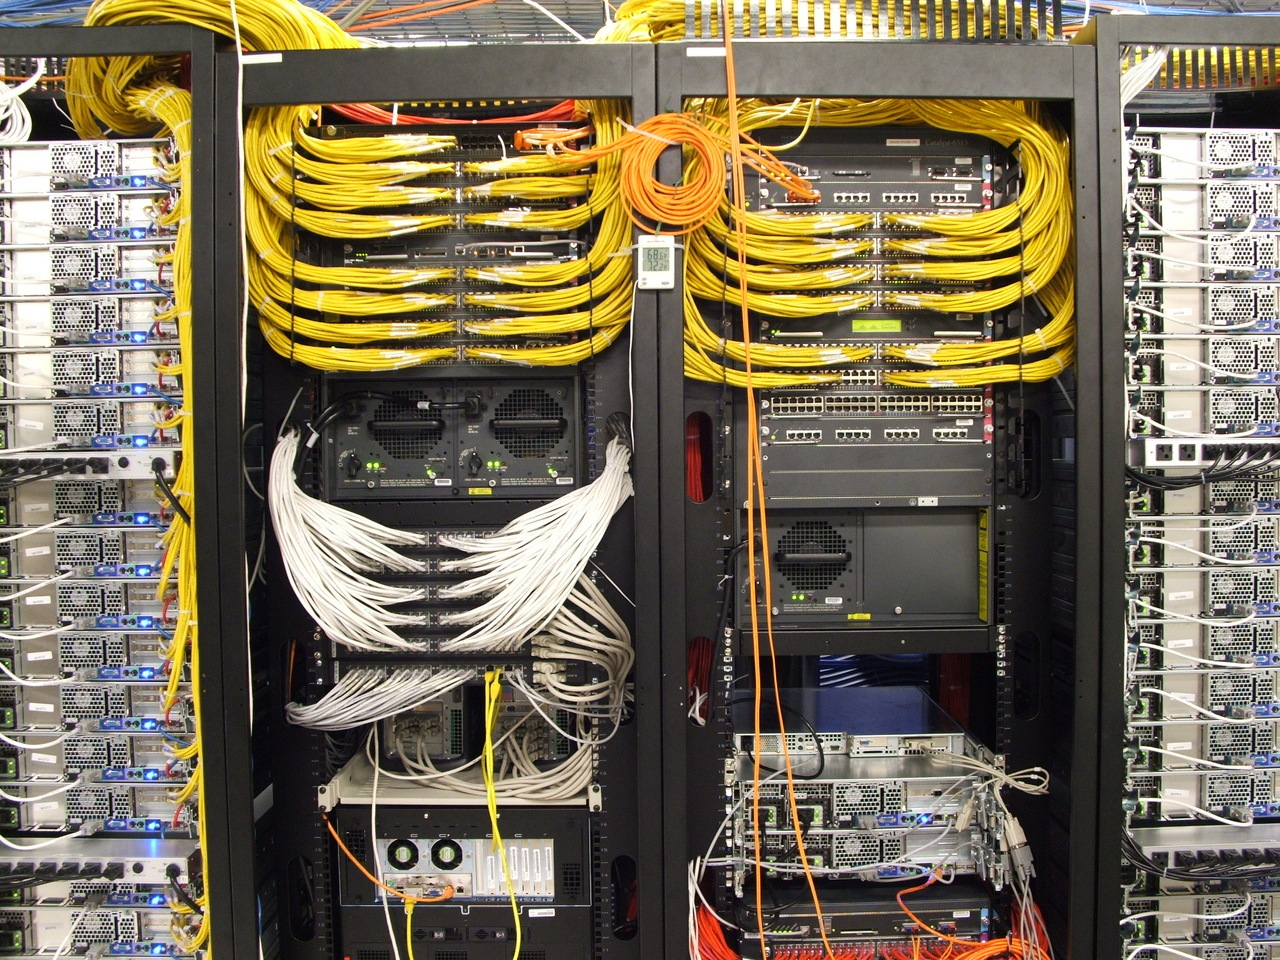 Rate This Rack 10 Ign Boards